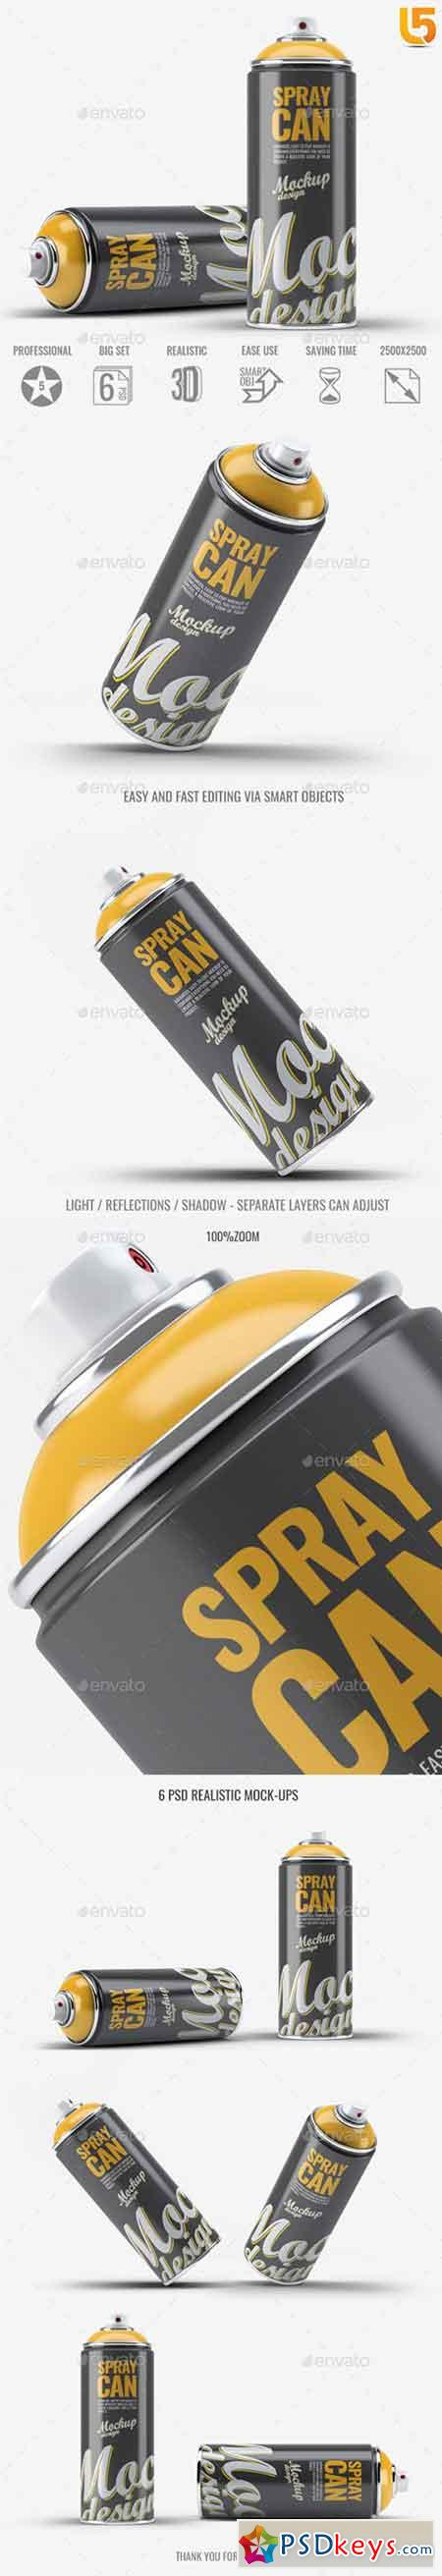 Spray Paint Mock-Up v.1 22817784